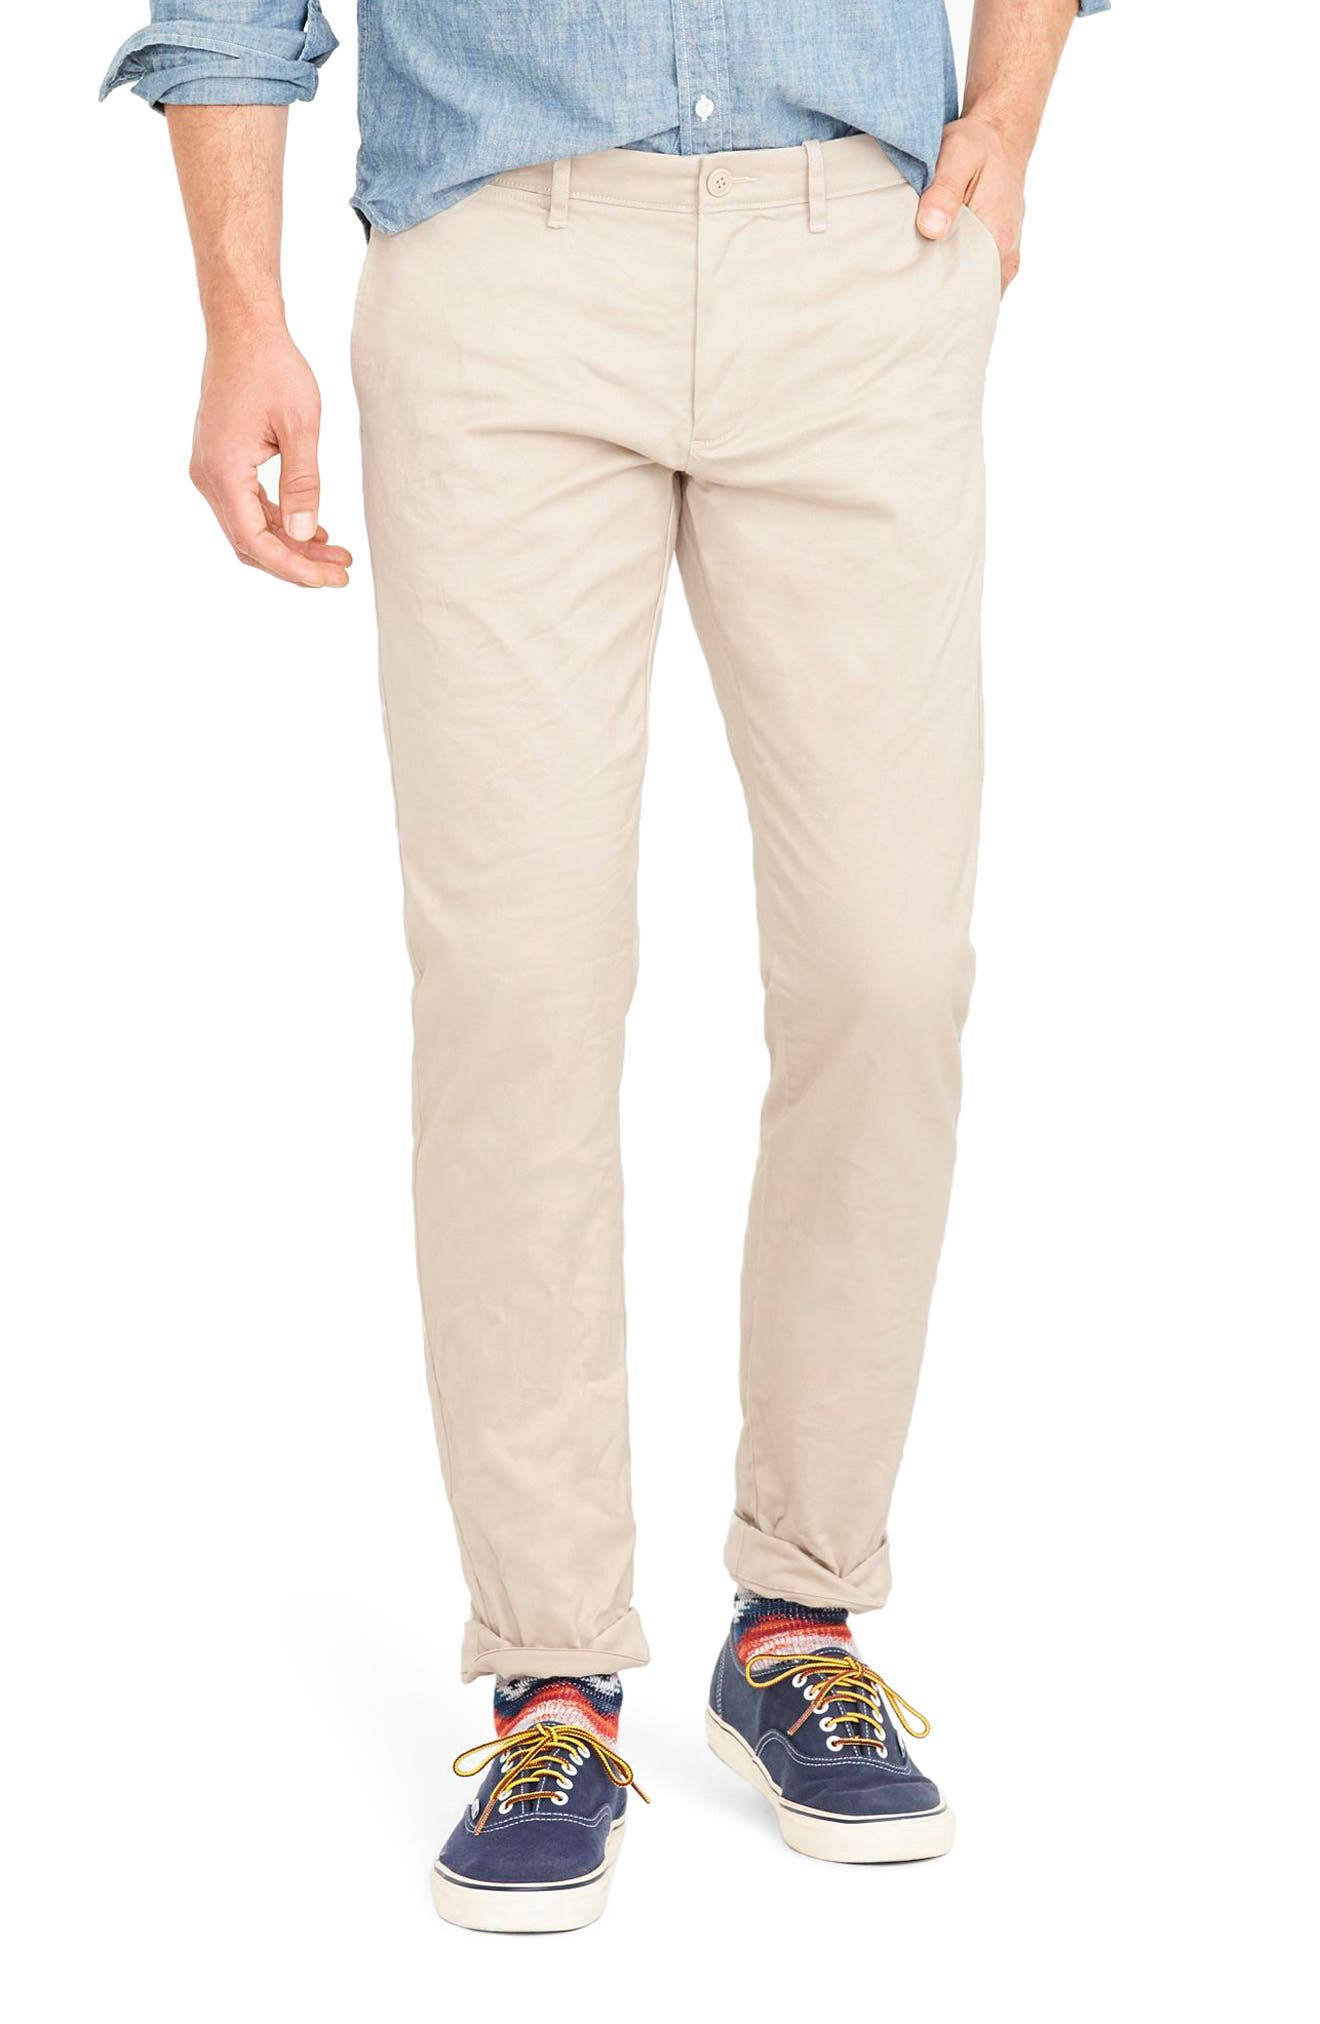 484 Slim Fit Stretch Chino Pants,                             Main thumbnail 3, color,